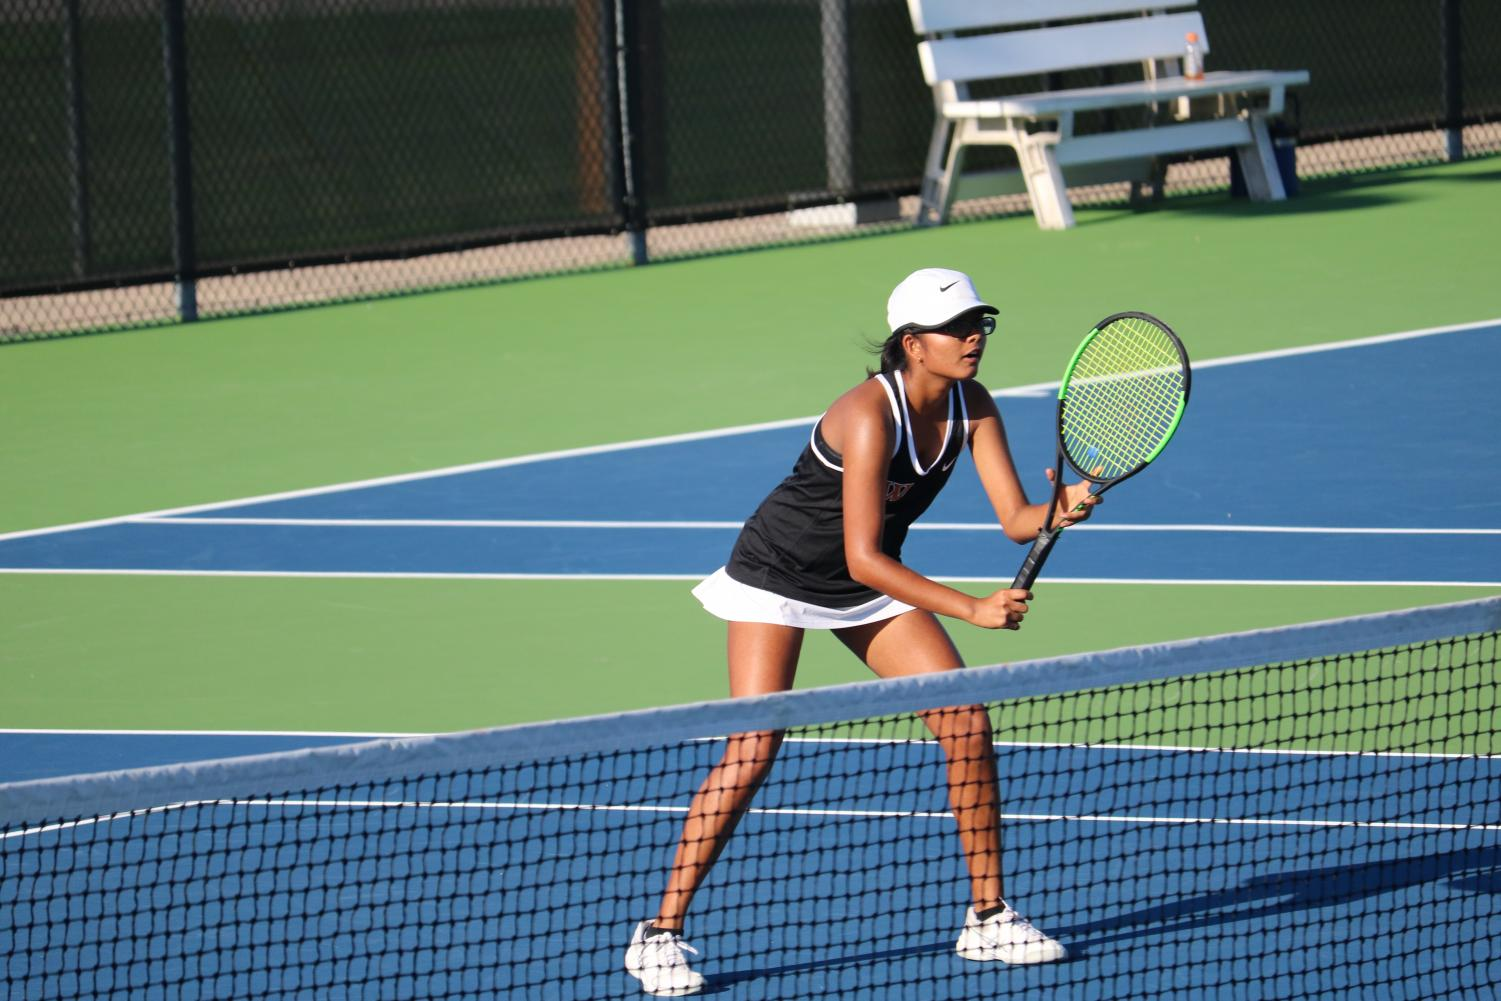 Mihika+Birmiwal+%2720+gets+into+position+before+her+doubles+match+starts.